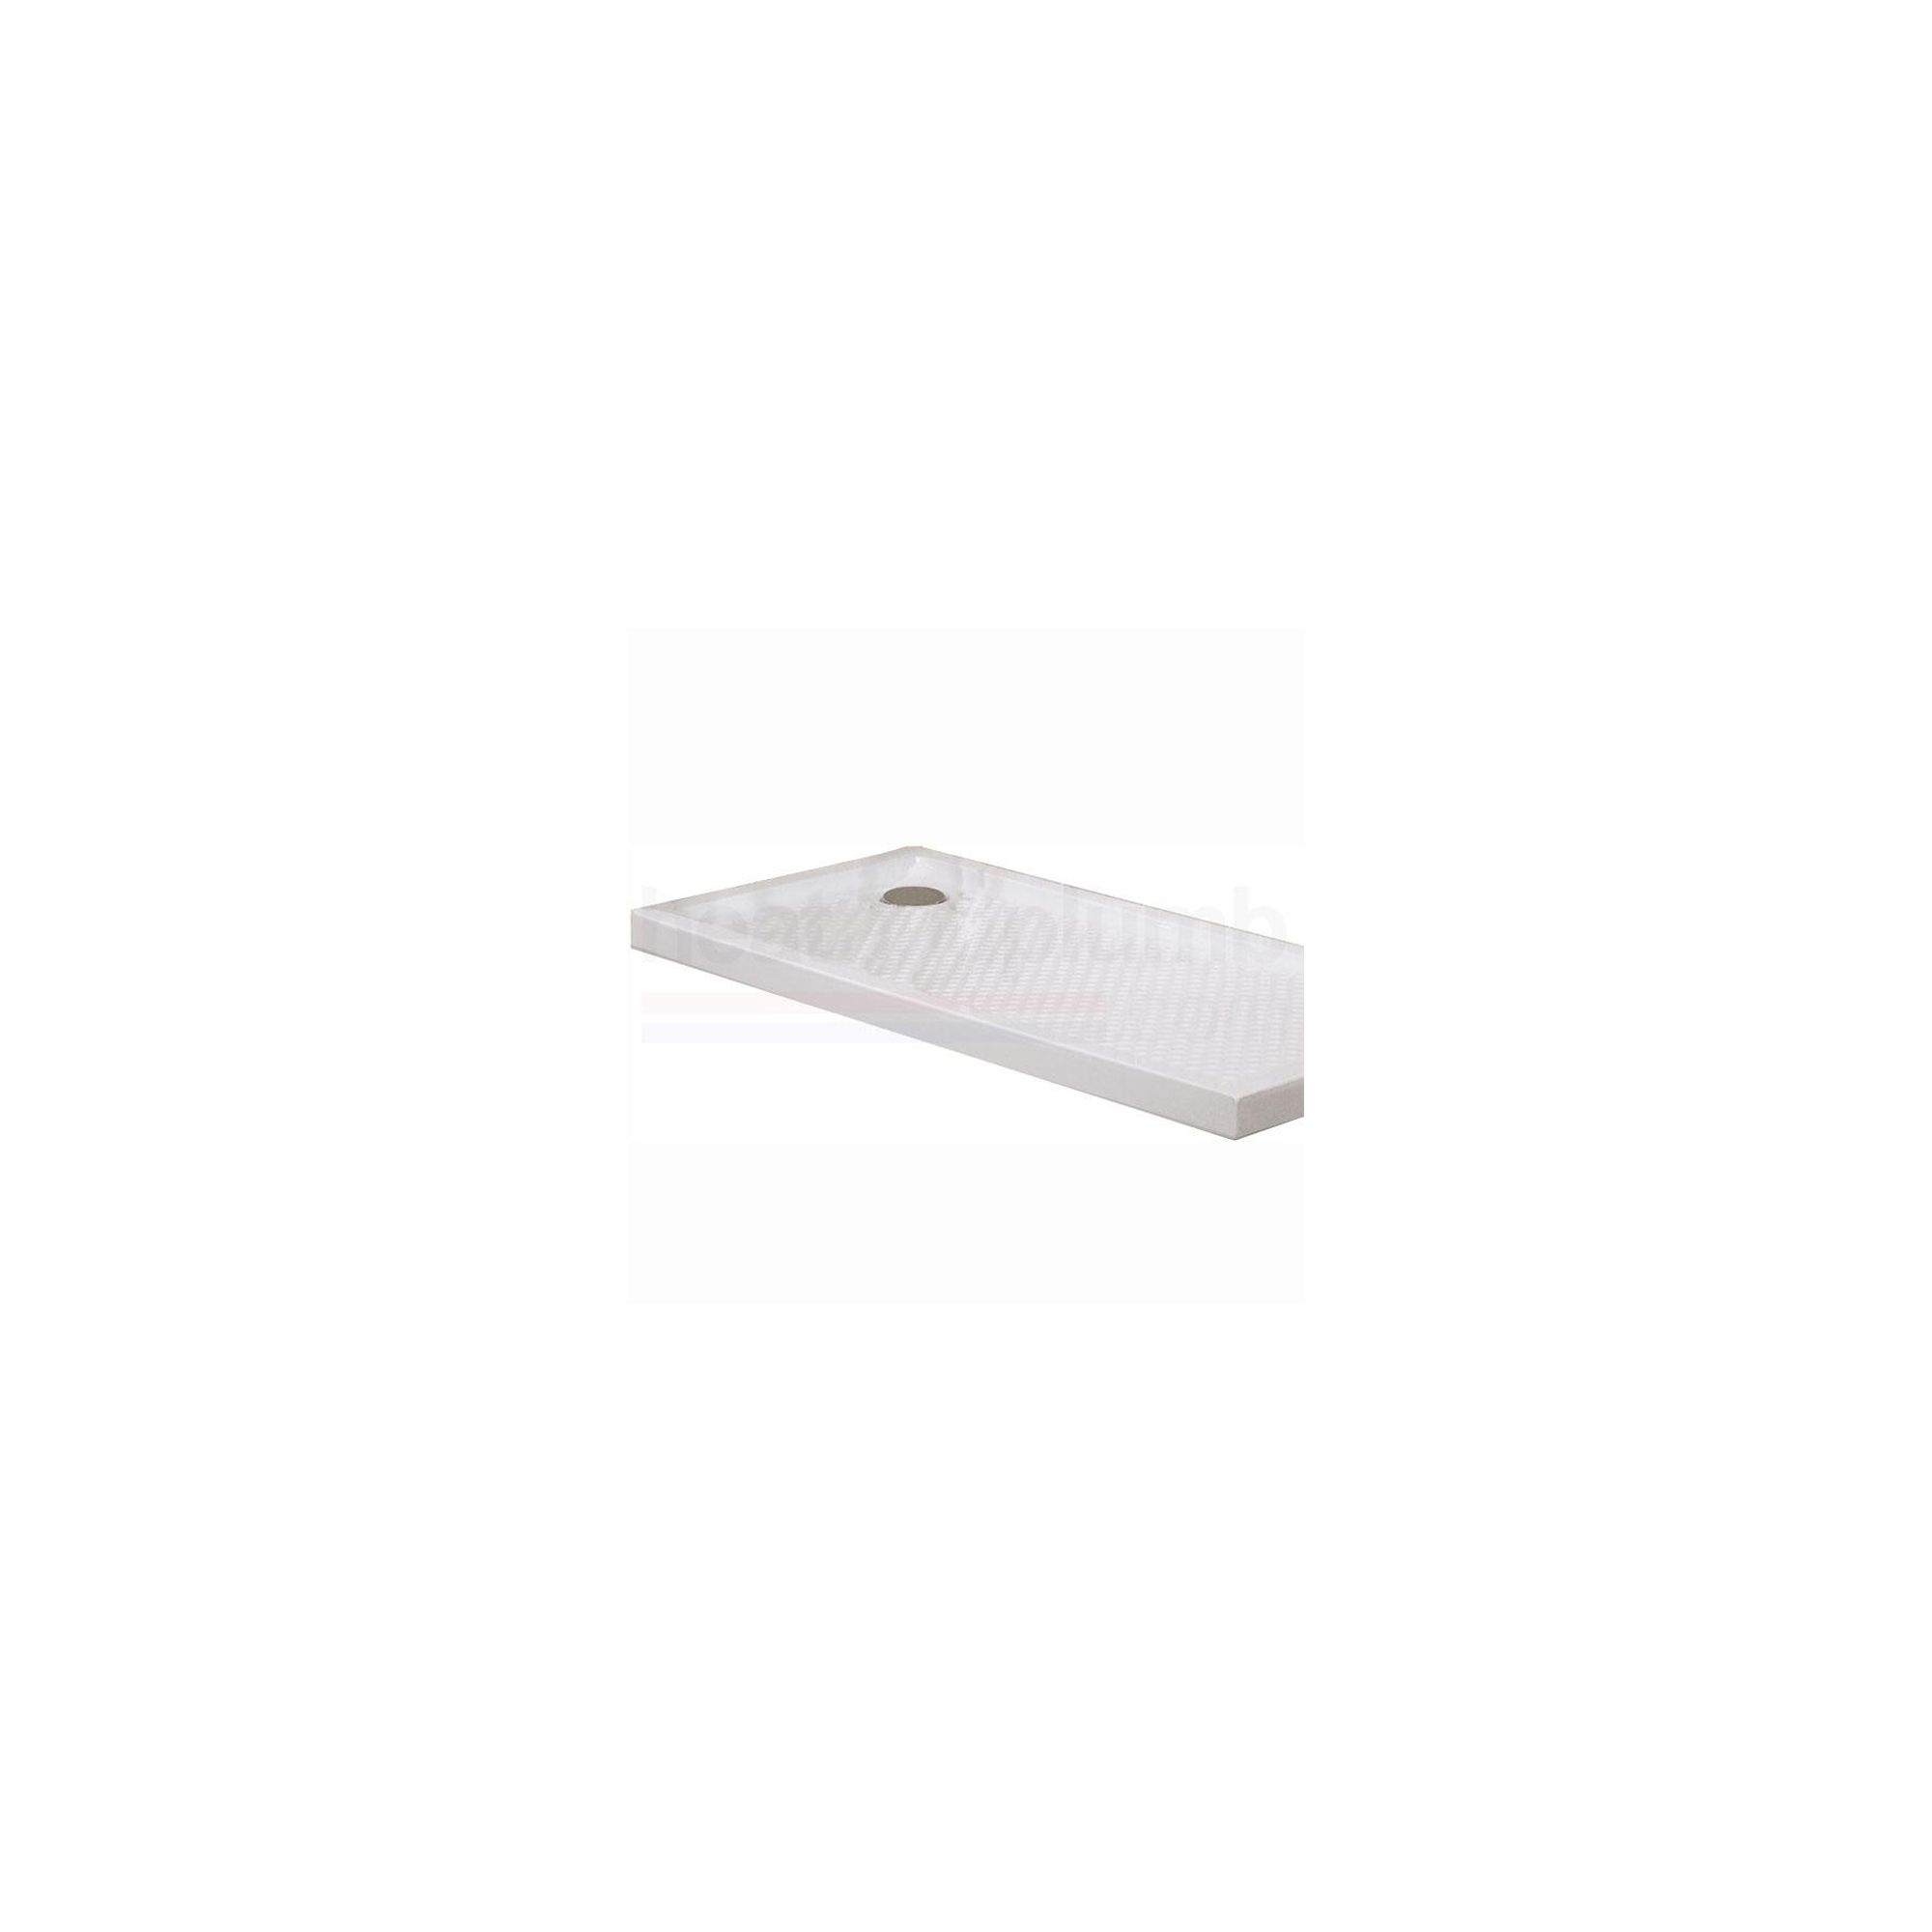 AKW Keppel Rectangular Shower Tray 1420mm x 700mm at Tesco Direct